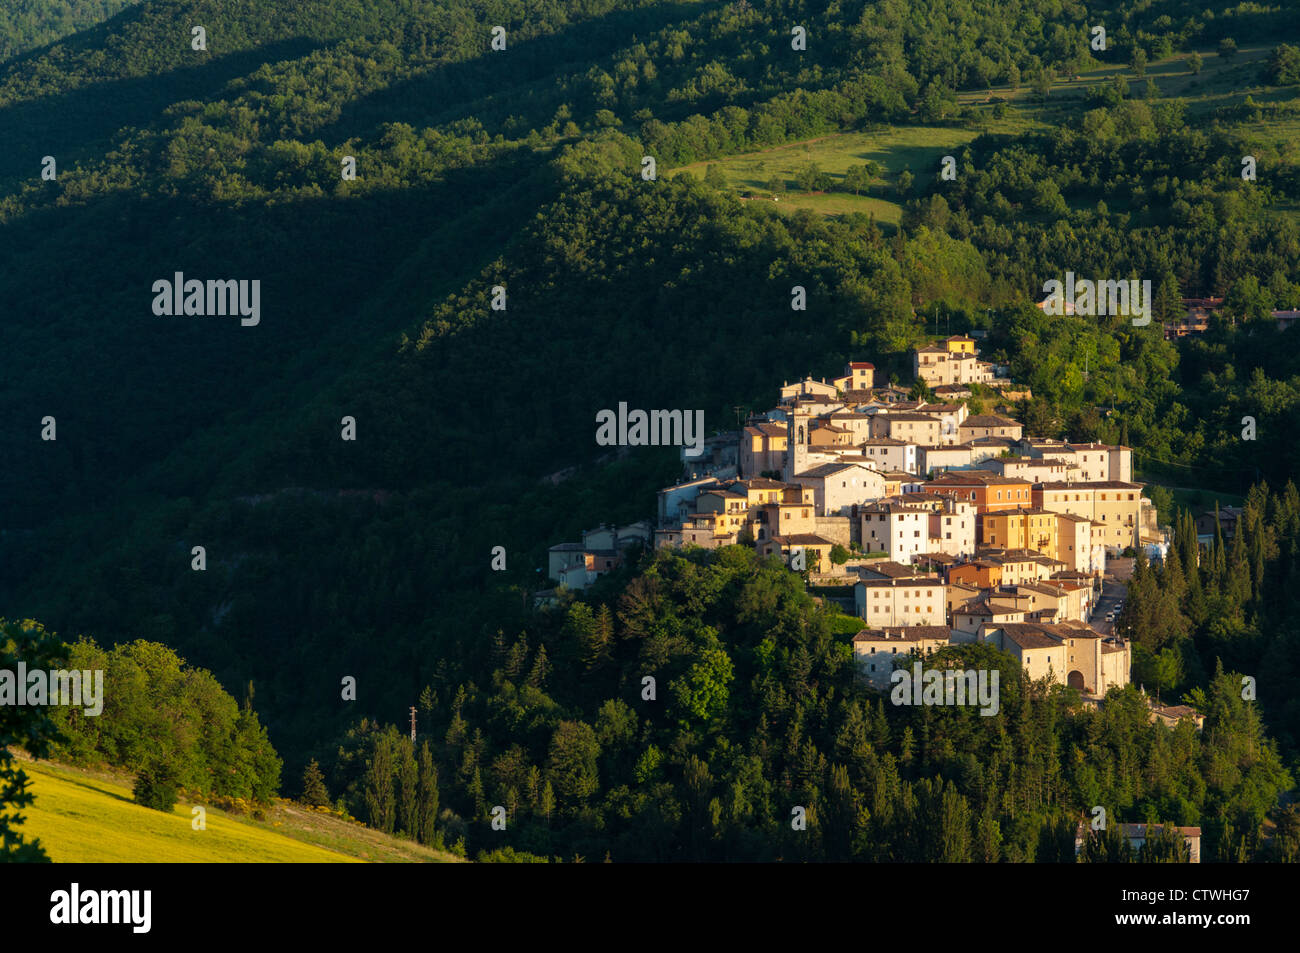 The Hilltown of Preci at Sunset - Stock Image